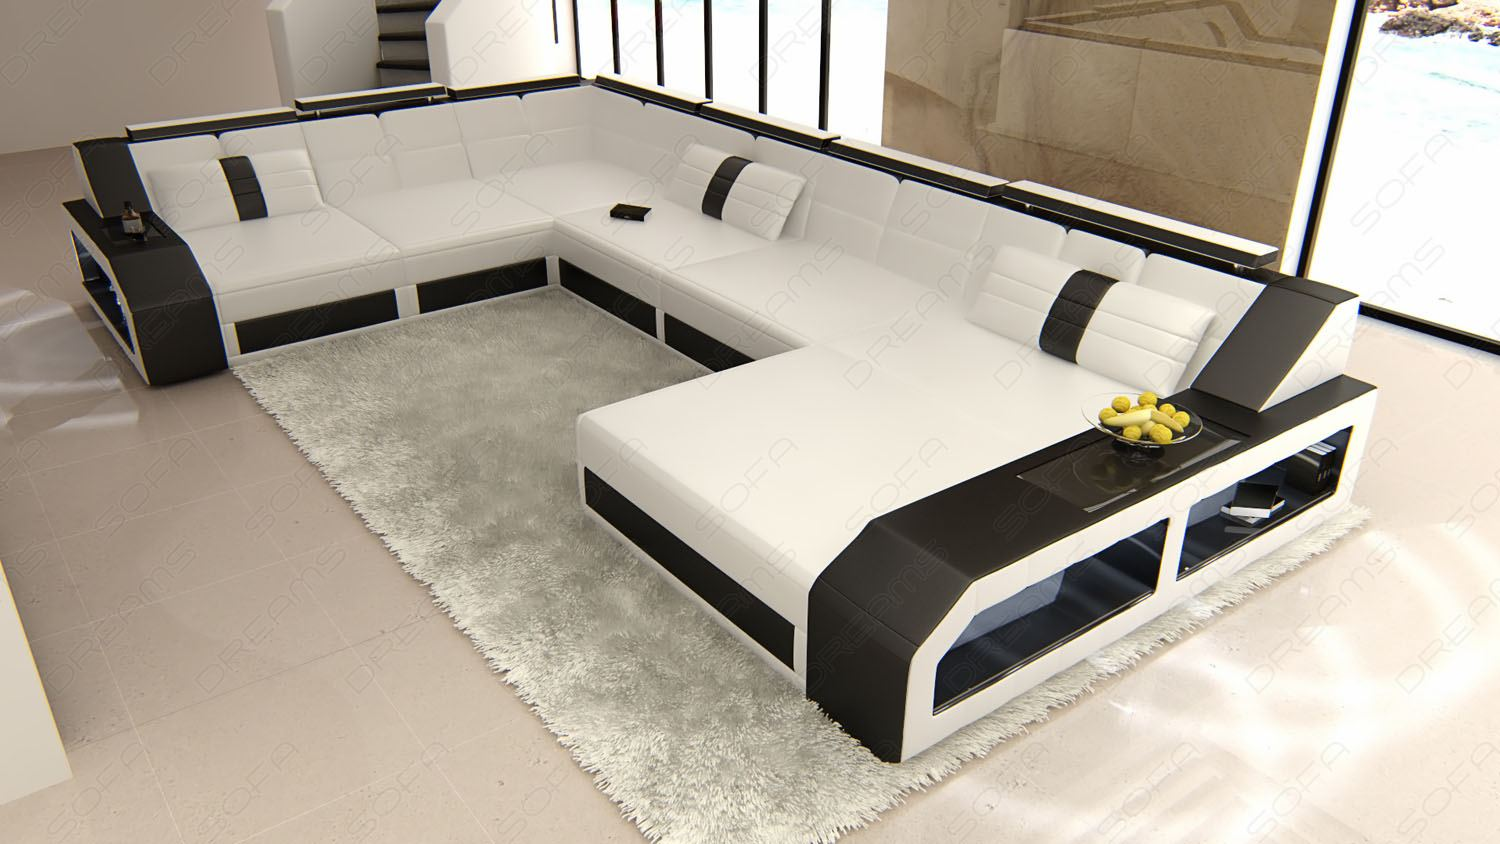 design sectional sofa matera xxl with led lights white. Black Bedroom Furniture Sets. Home Design Ideas